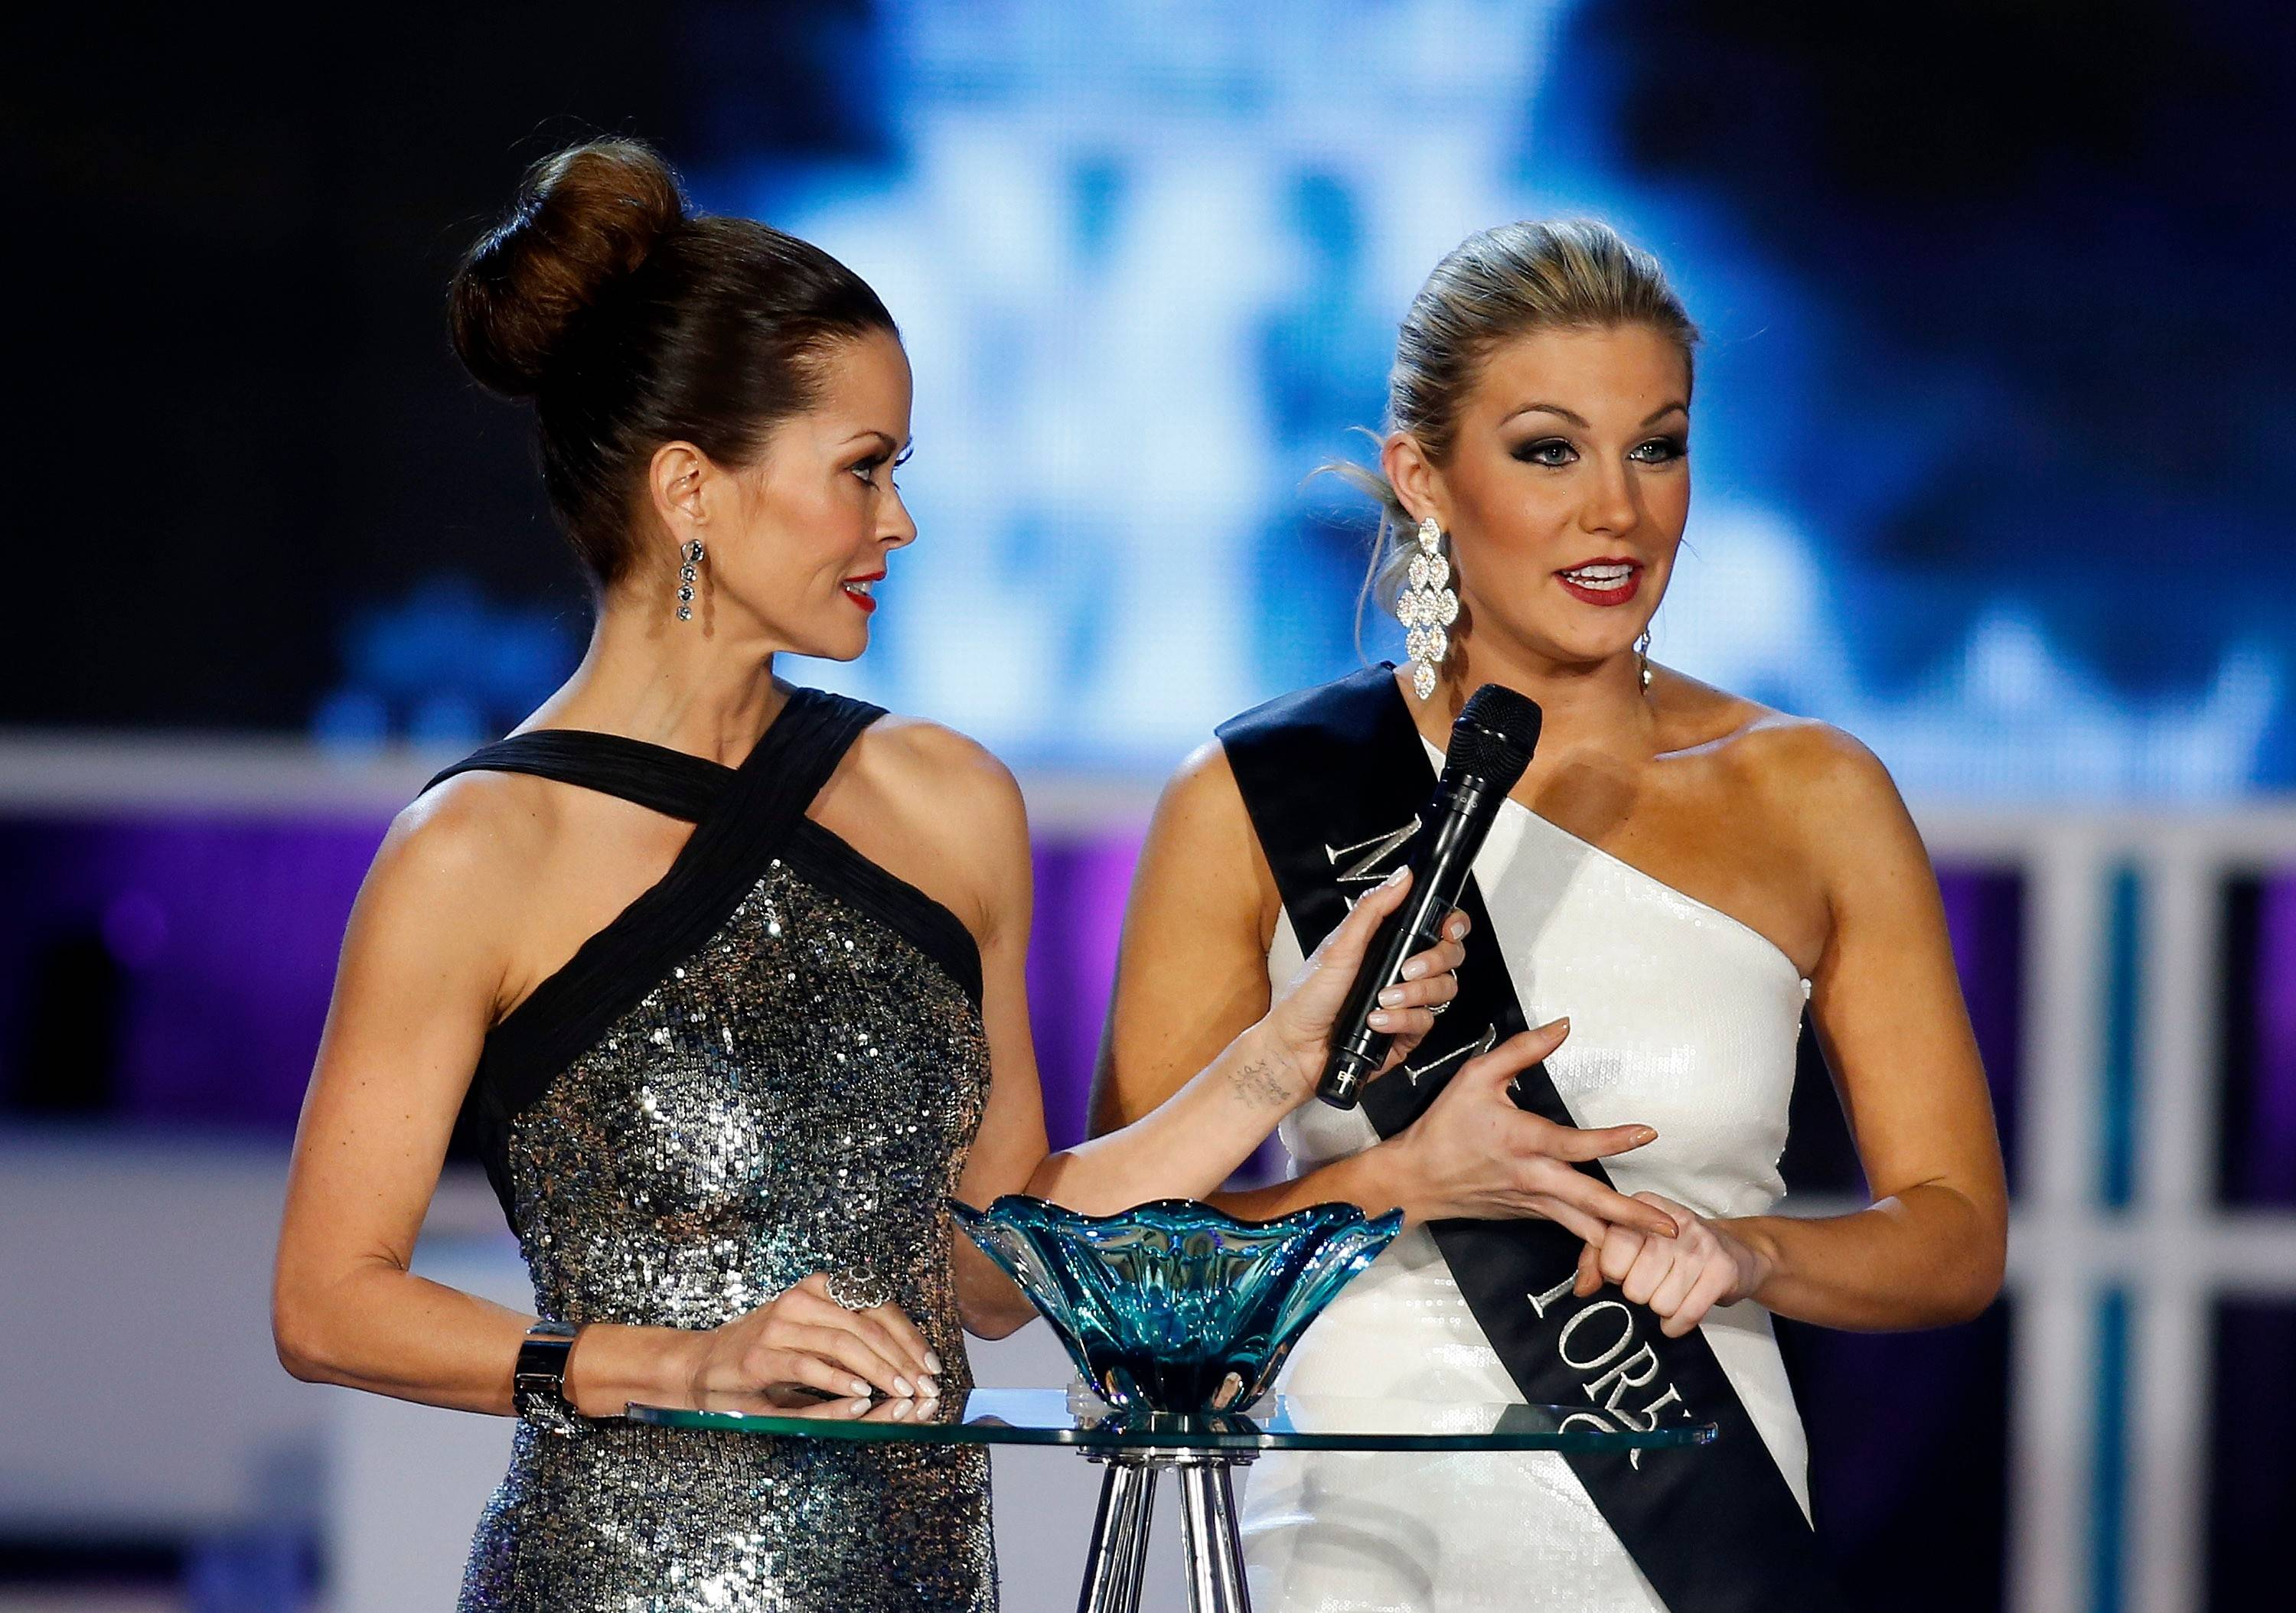 Miss New York Mallory Hytes Hagan, right, answers a question with host Brooke Burke during the Miss America 2013 pageant on Saturday, Jan. 12, 2013, in Las Vegas. Hytes Hagan was later crowned Miss America 2013.